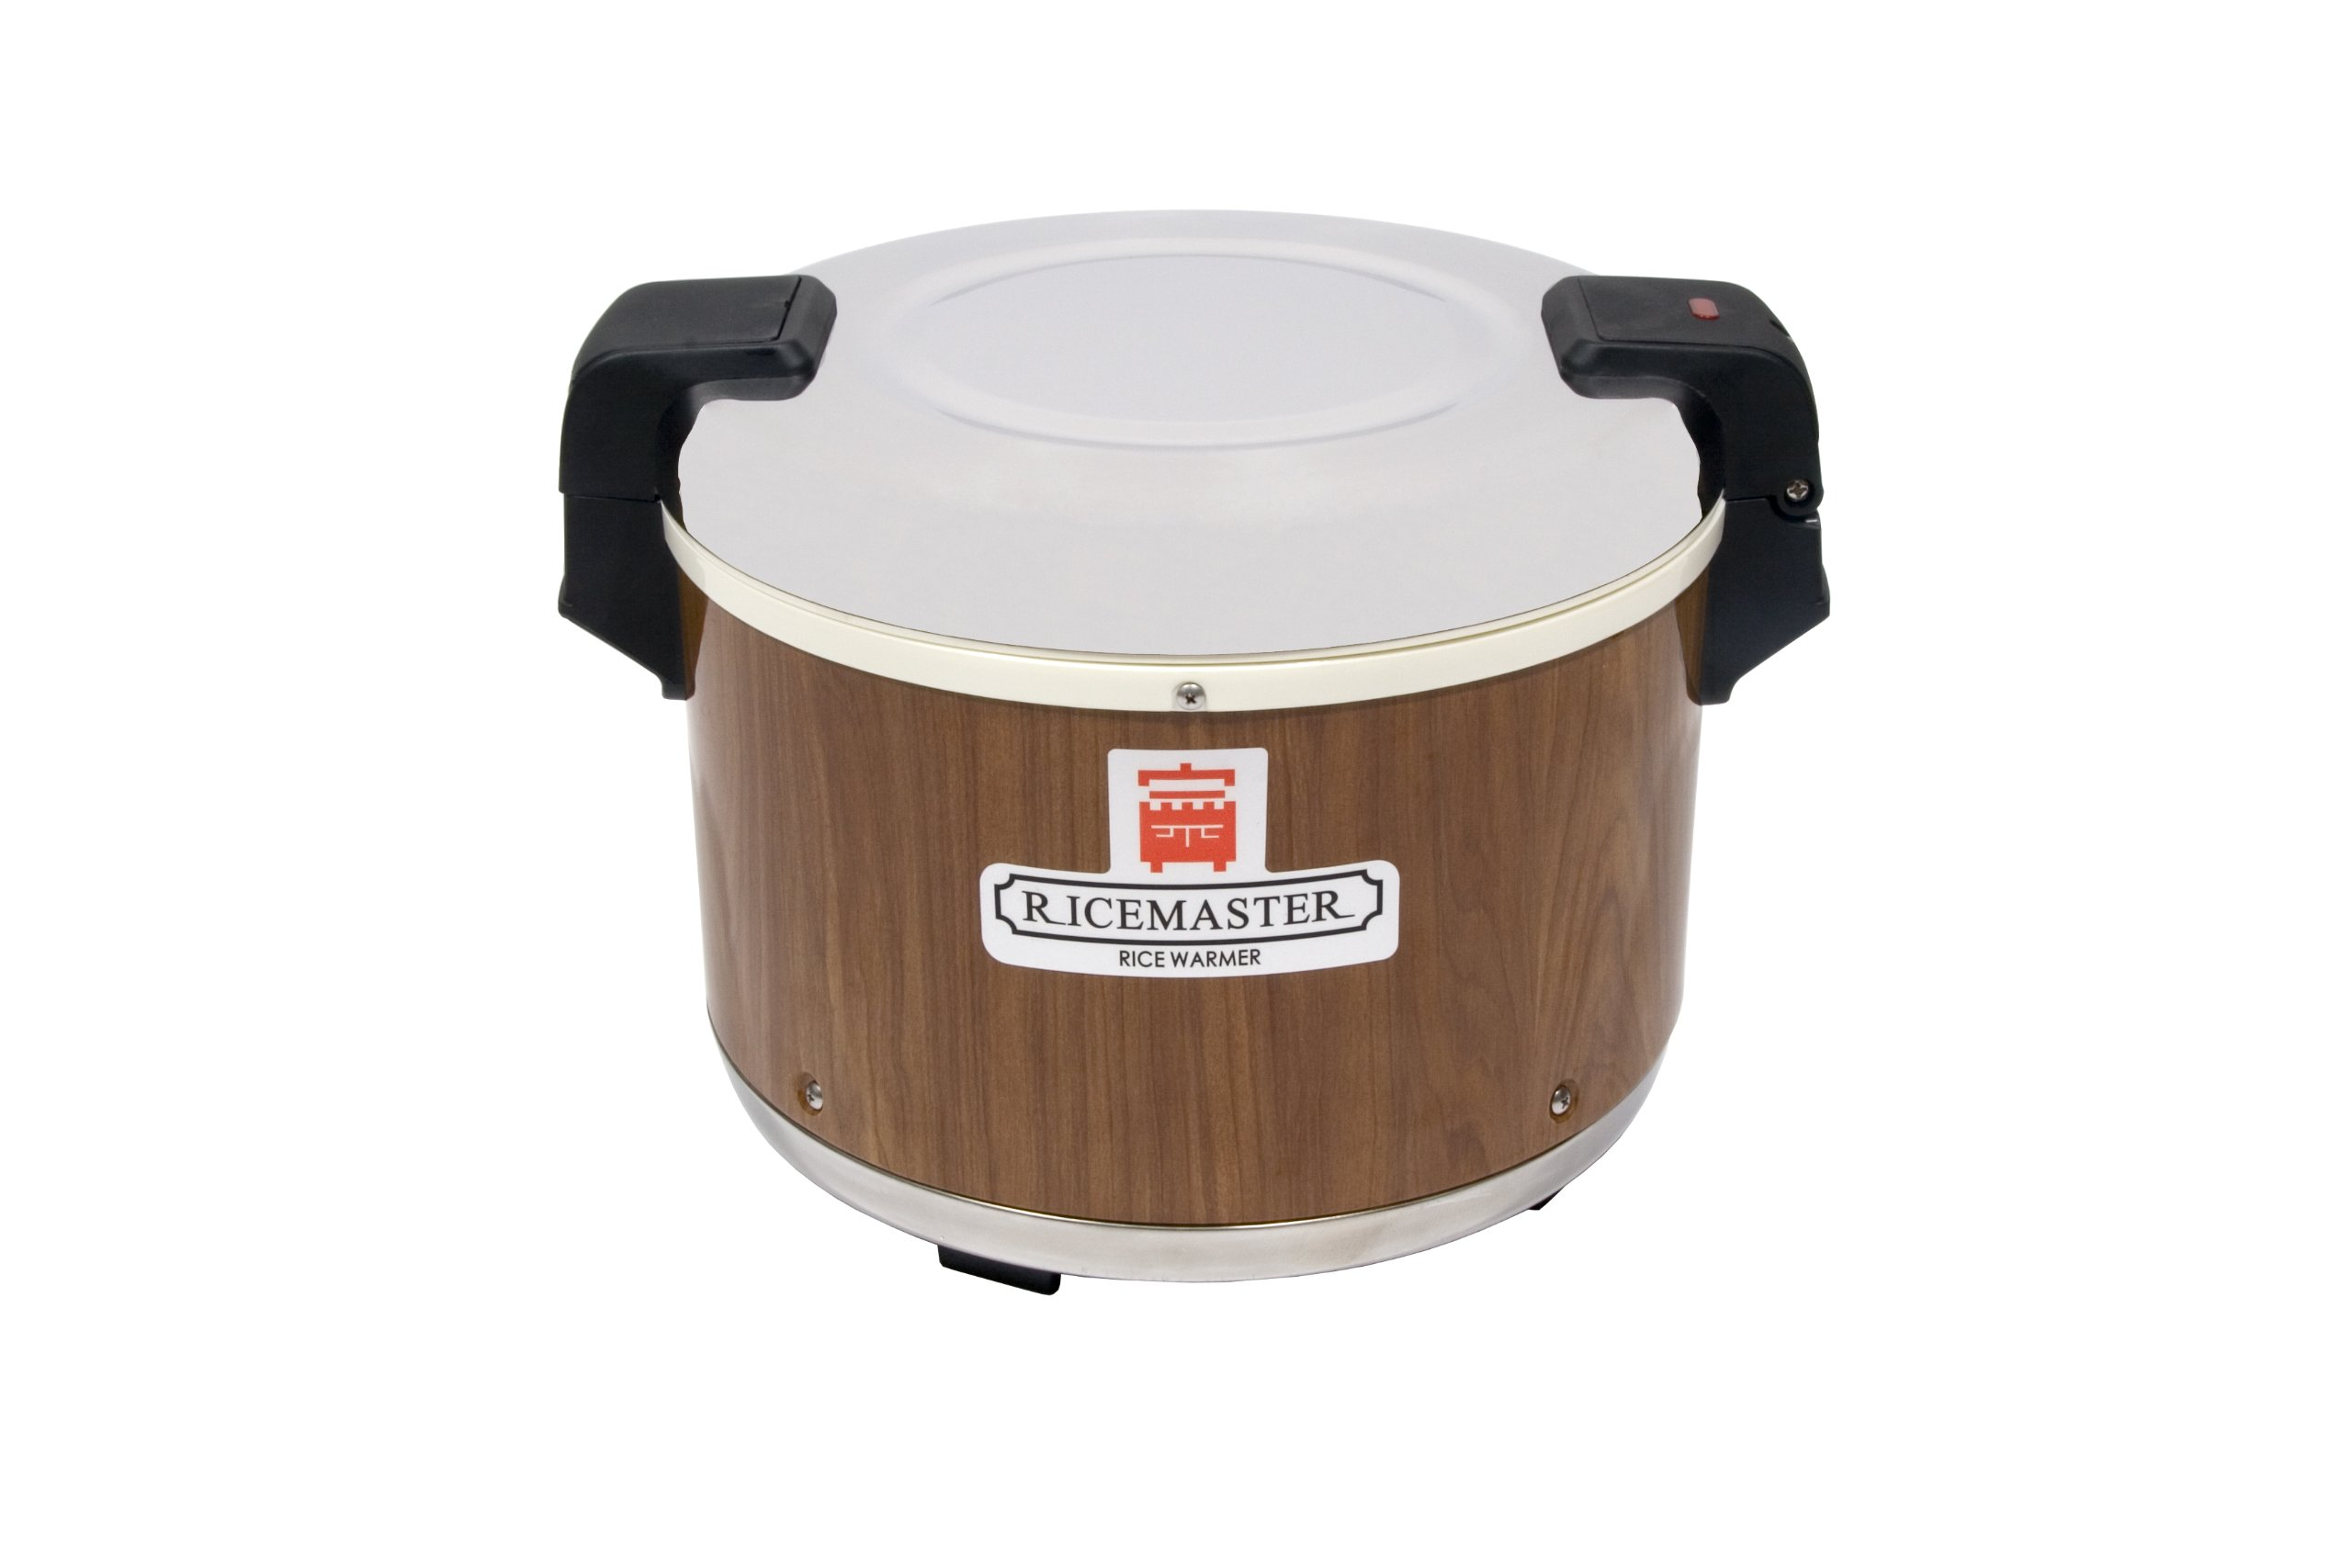 RiceMaster 18 Qt. Rice Warmer With Woodgrain Exterior - 120V